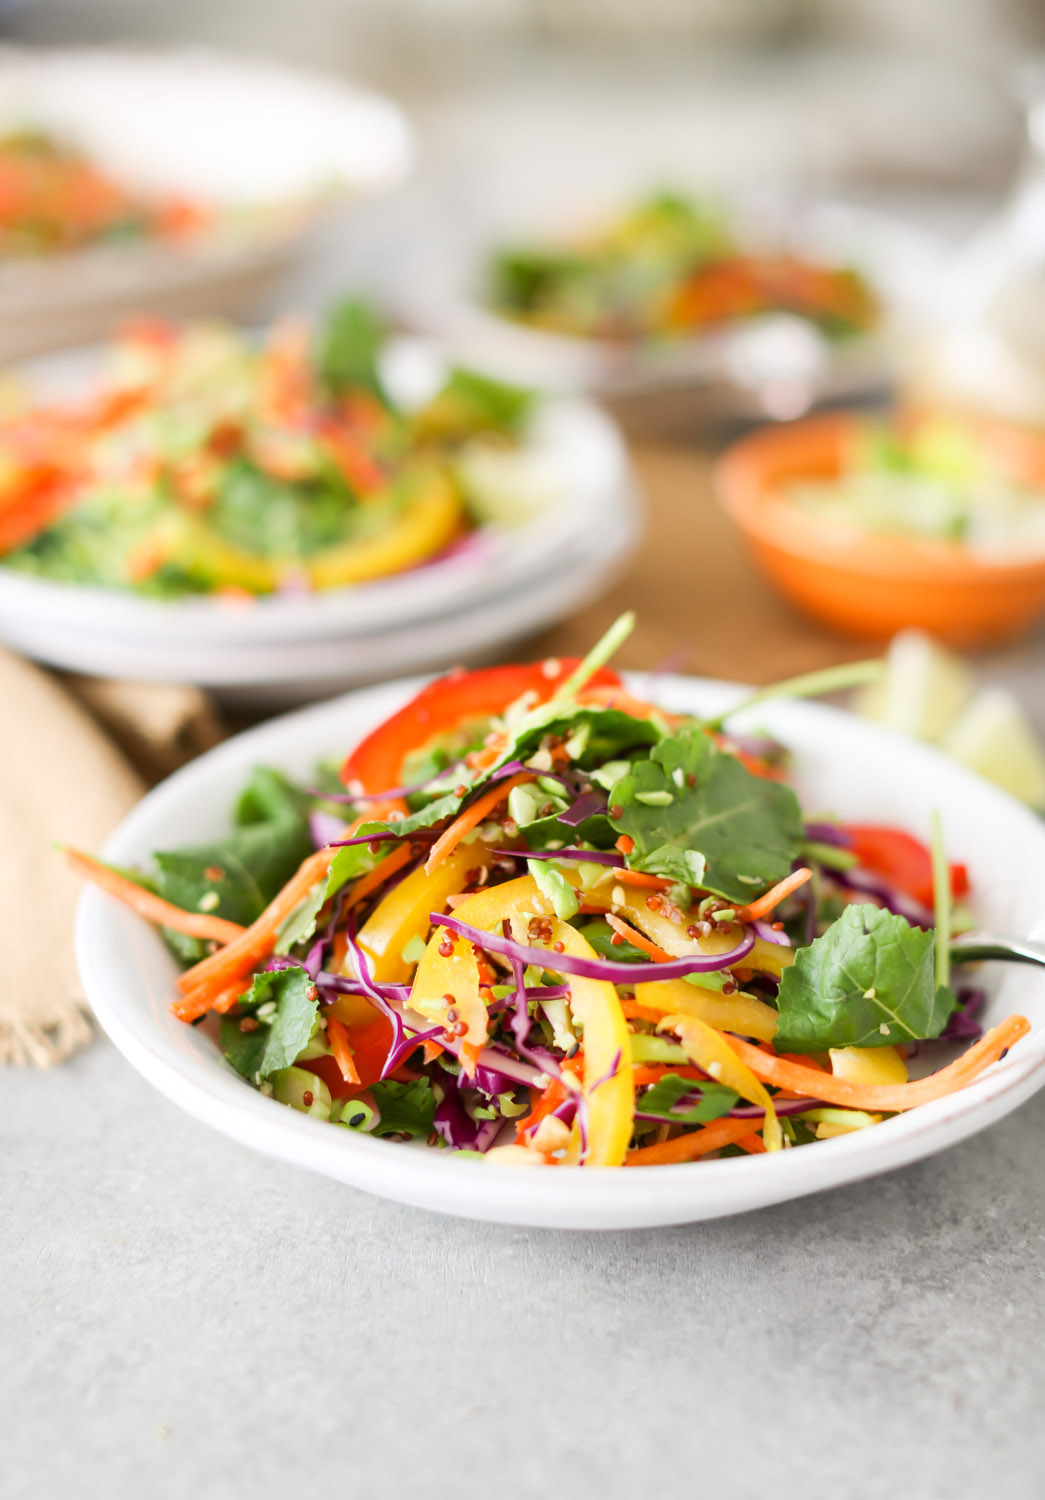 Thai Cashew Chopped Salad with Sesame-Garlic Dressing